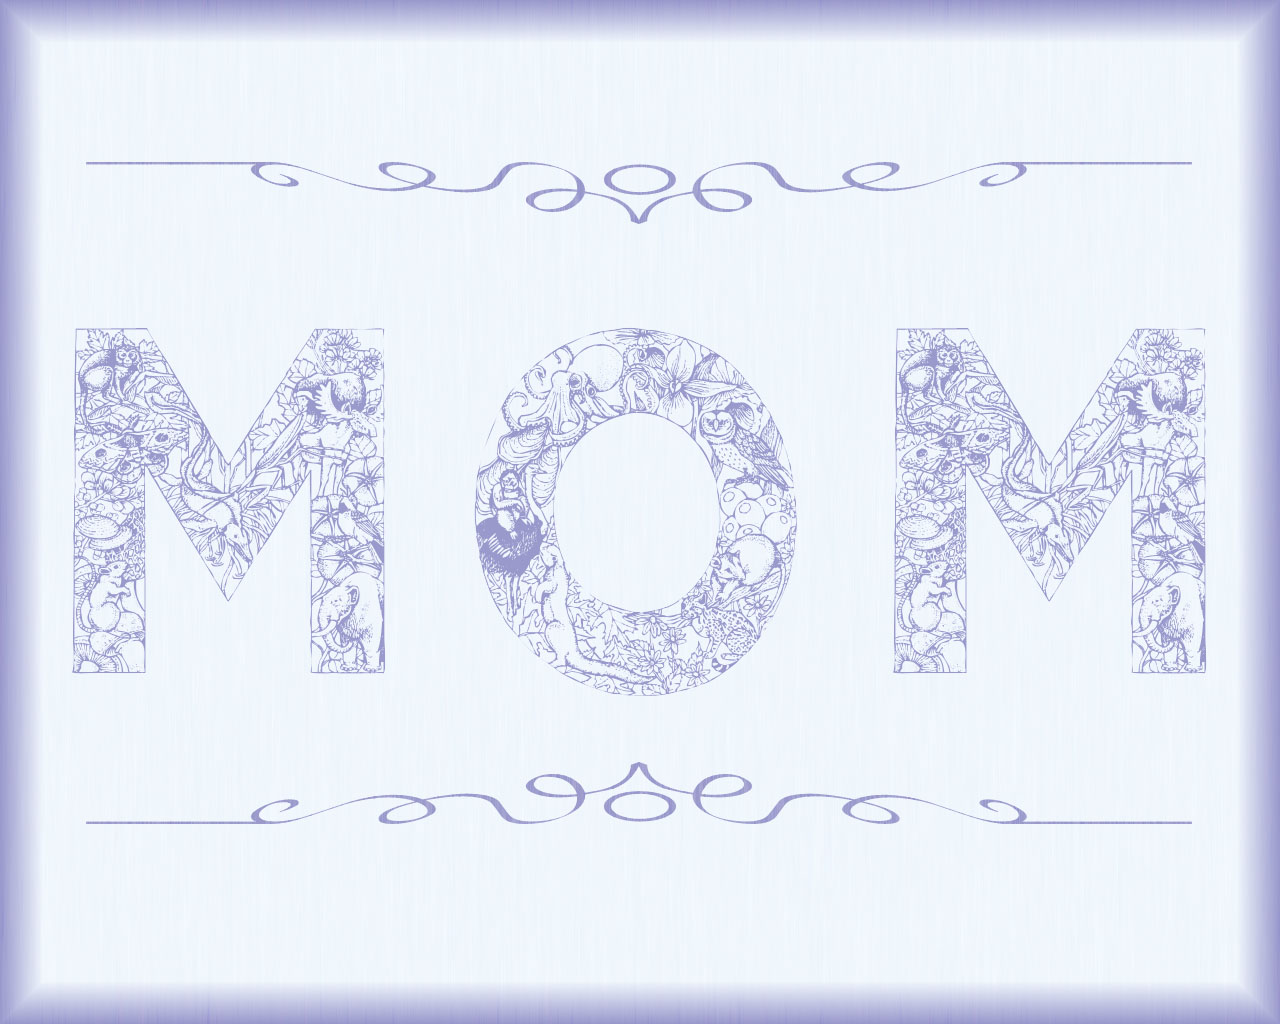 Mothers Day Desktop Wallpapers Cool Christian Wallpapers 1280x1024